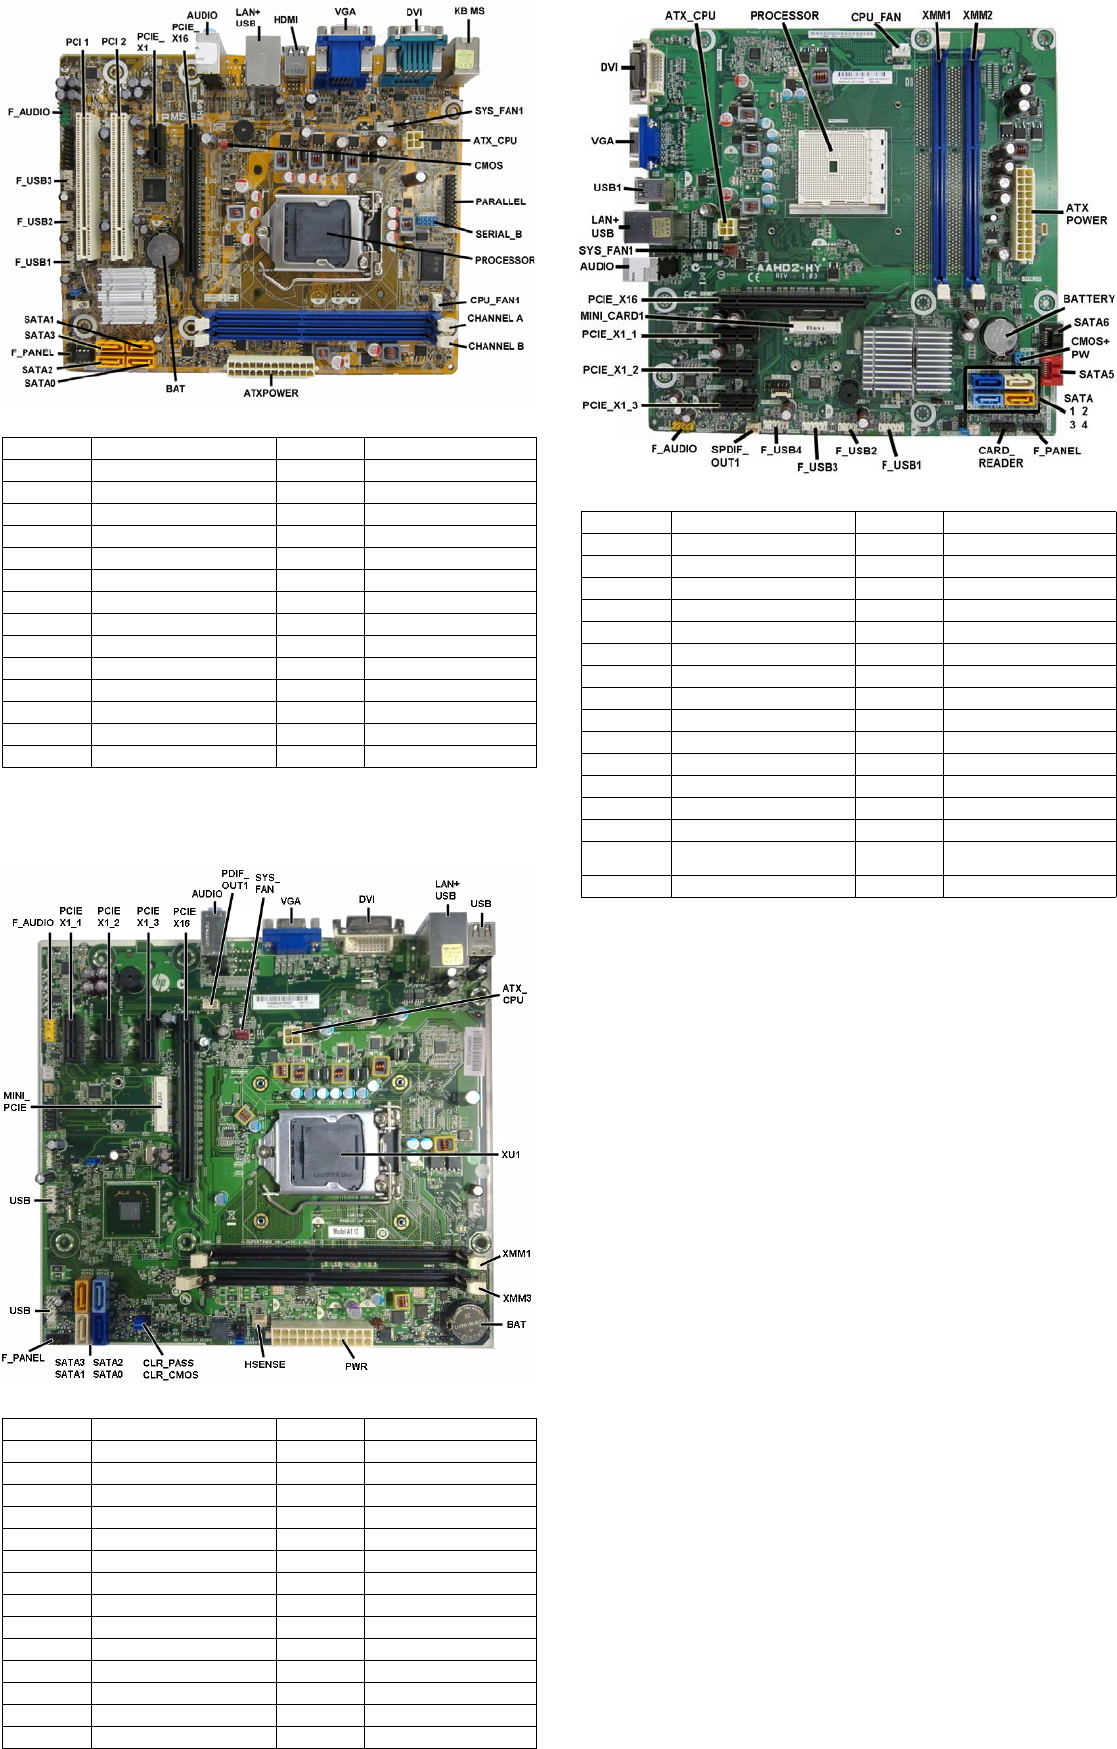 HP Pro 3400/3500 Series, MT 670582-002 Illustrated Parts & Service Map